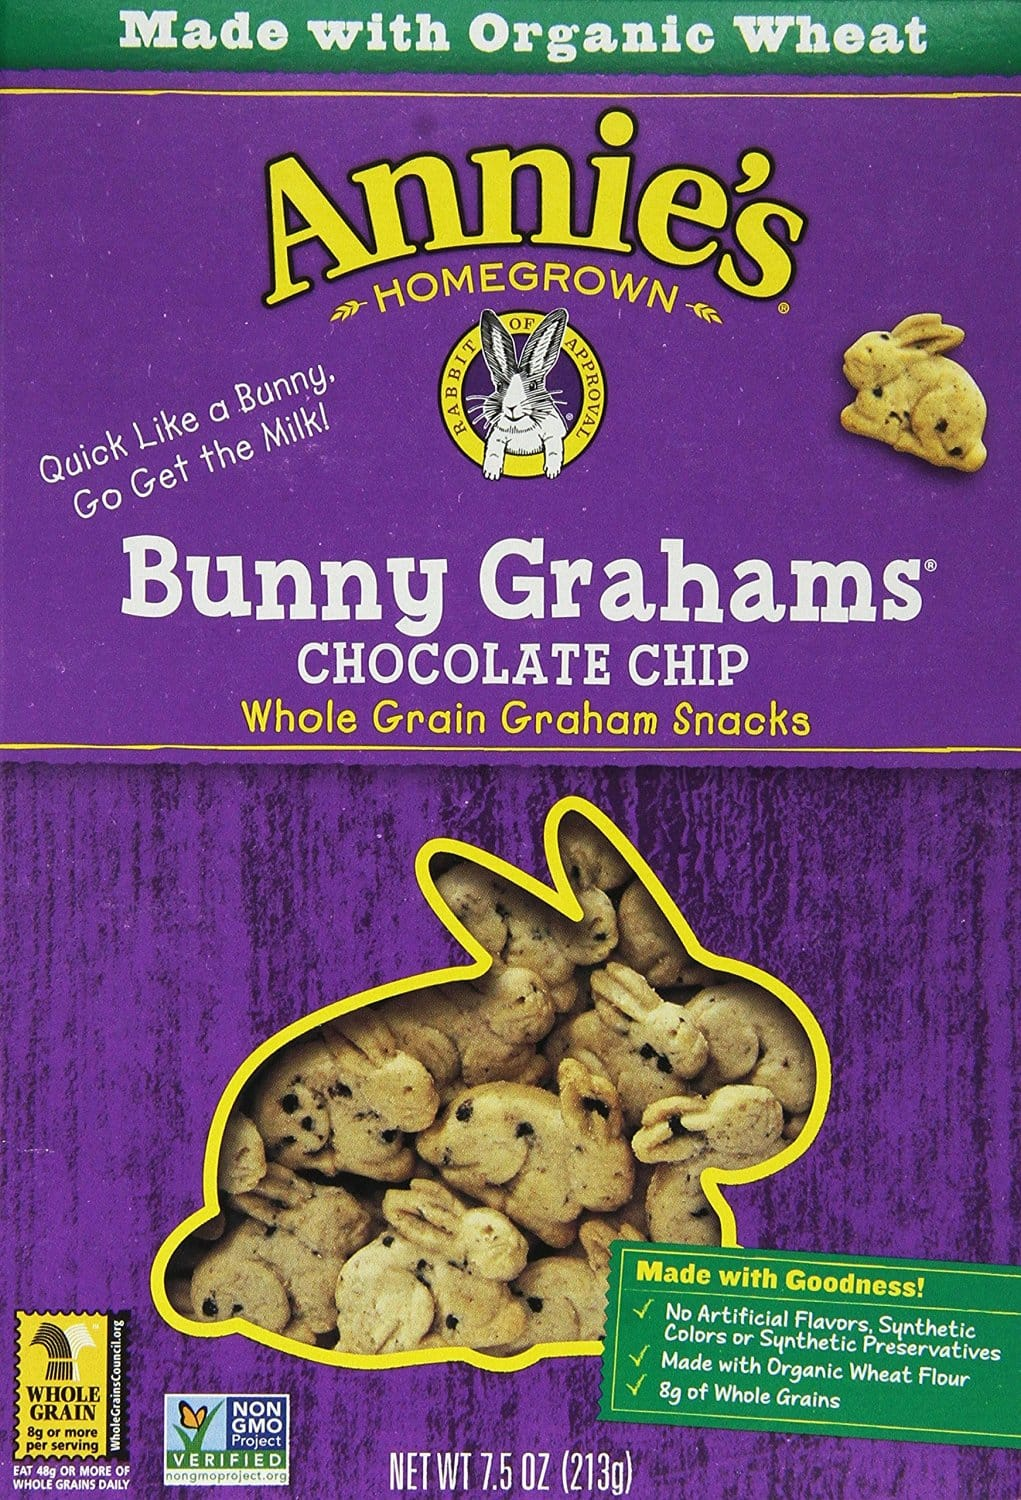 Annie's Homegrown Bunny Grahams Chocolate Chip, 7.5-Ounce Boxes (Pack of 12) $12.45 or less